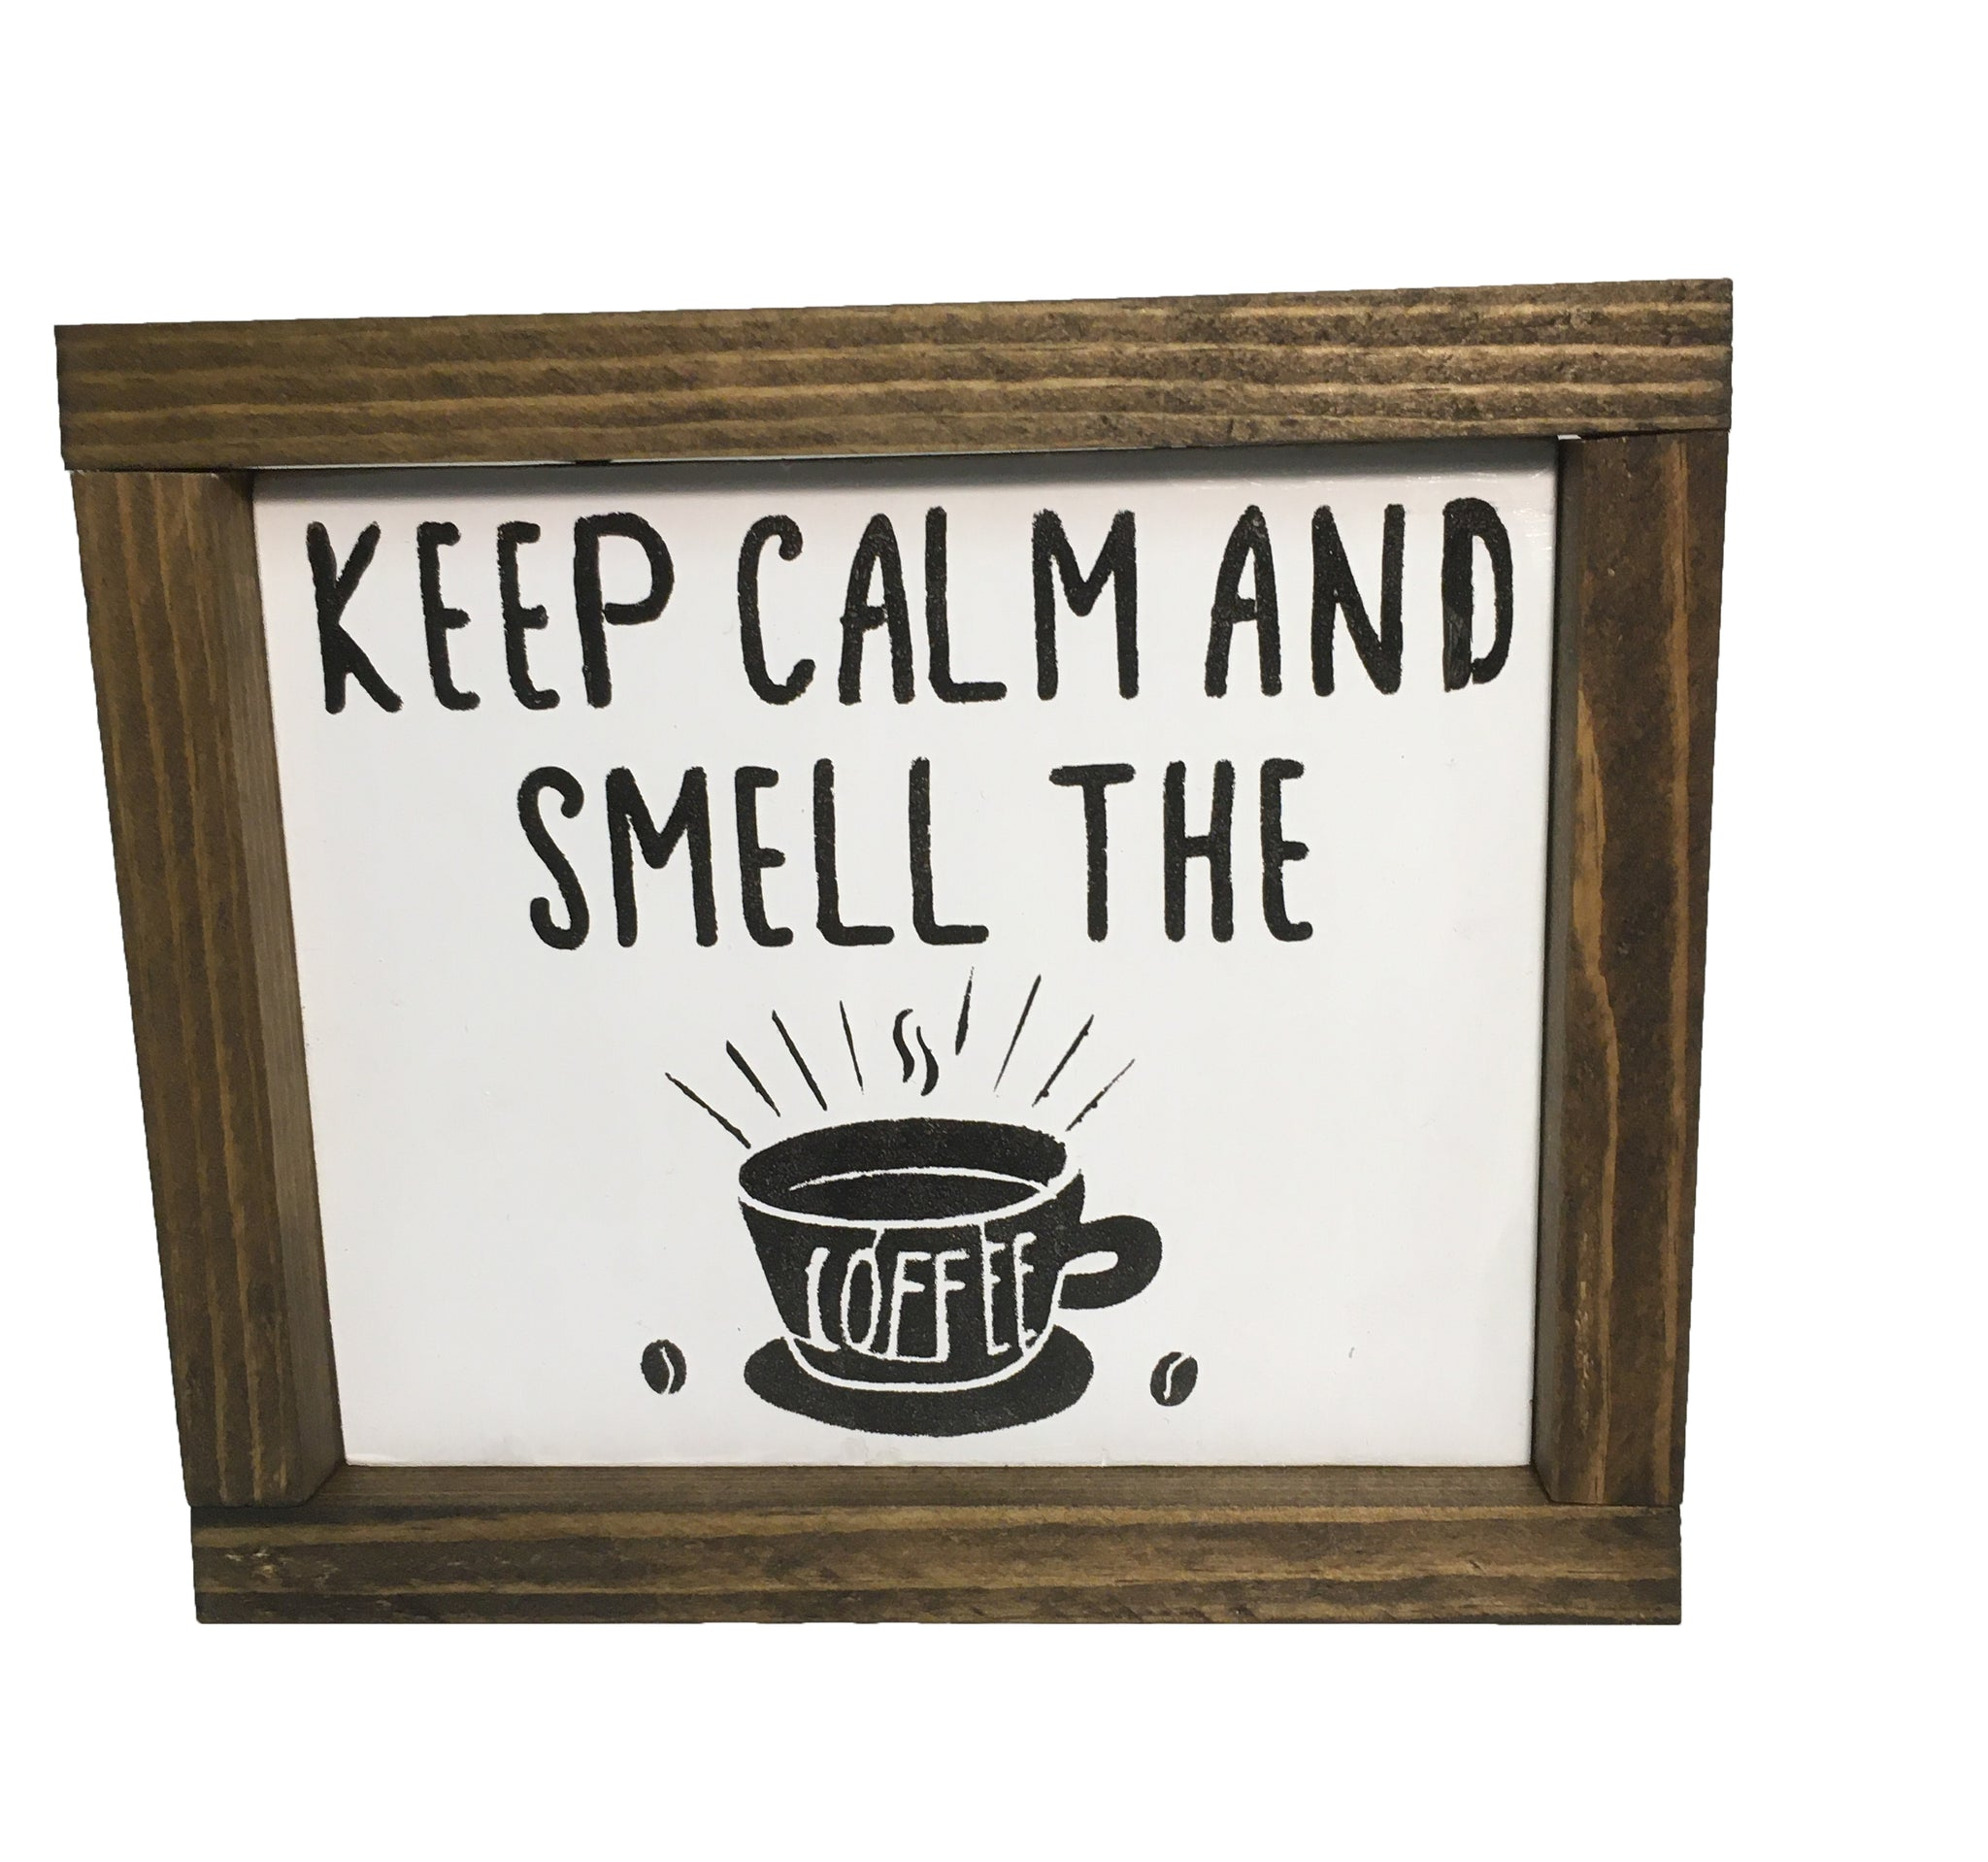 Keep Calm and Smell the Coffee! Kitchen sign - Everyday Decor